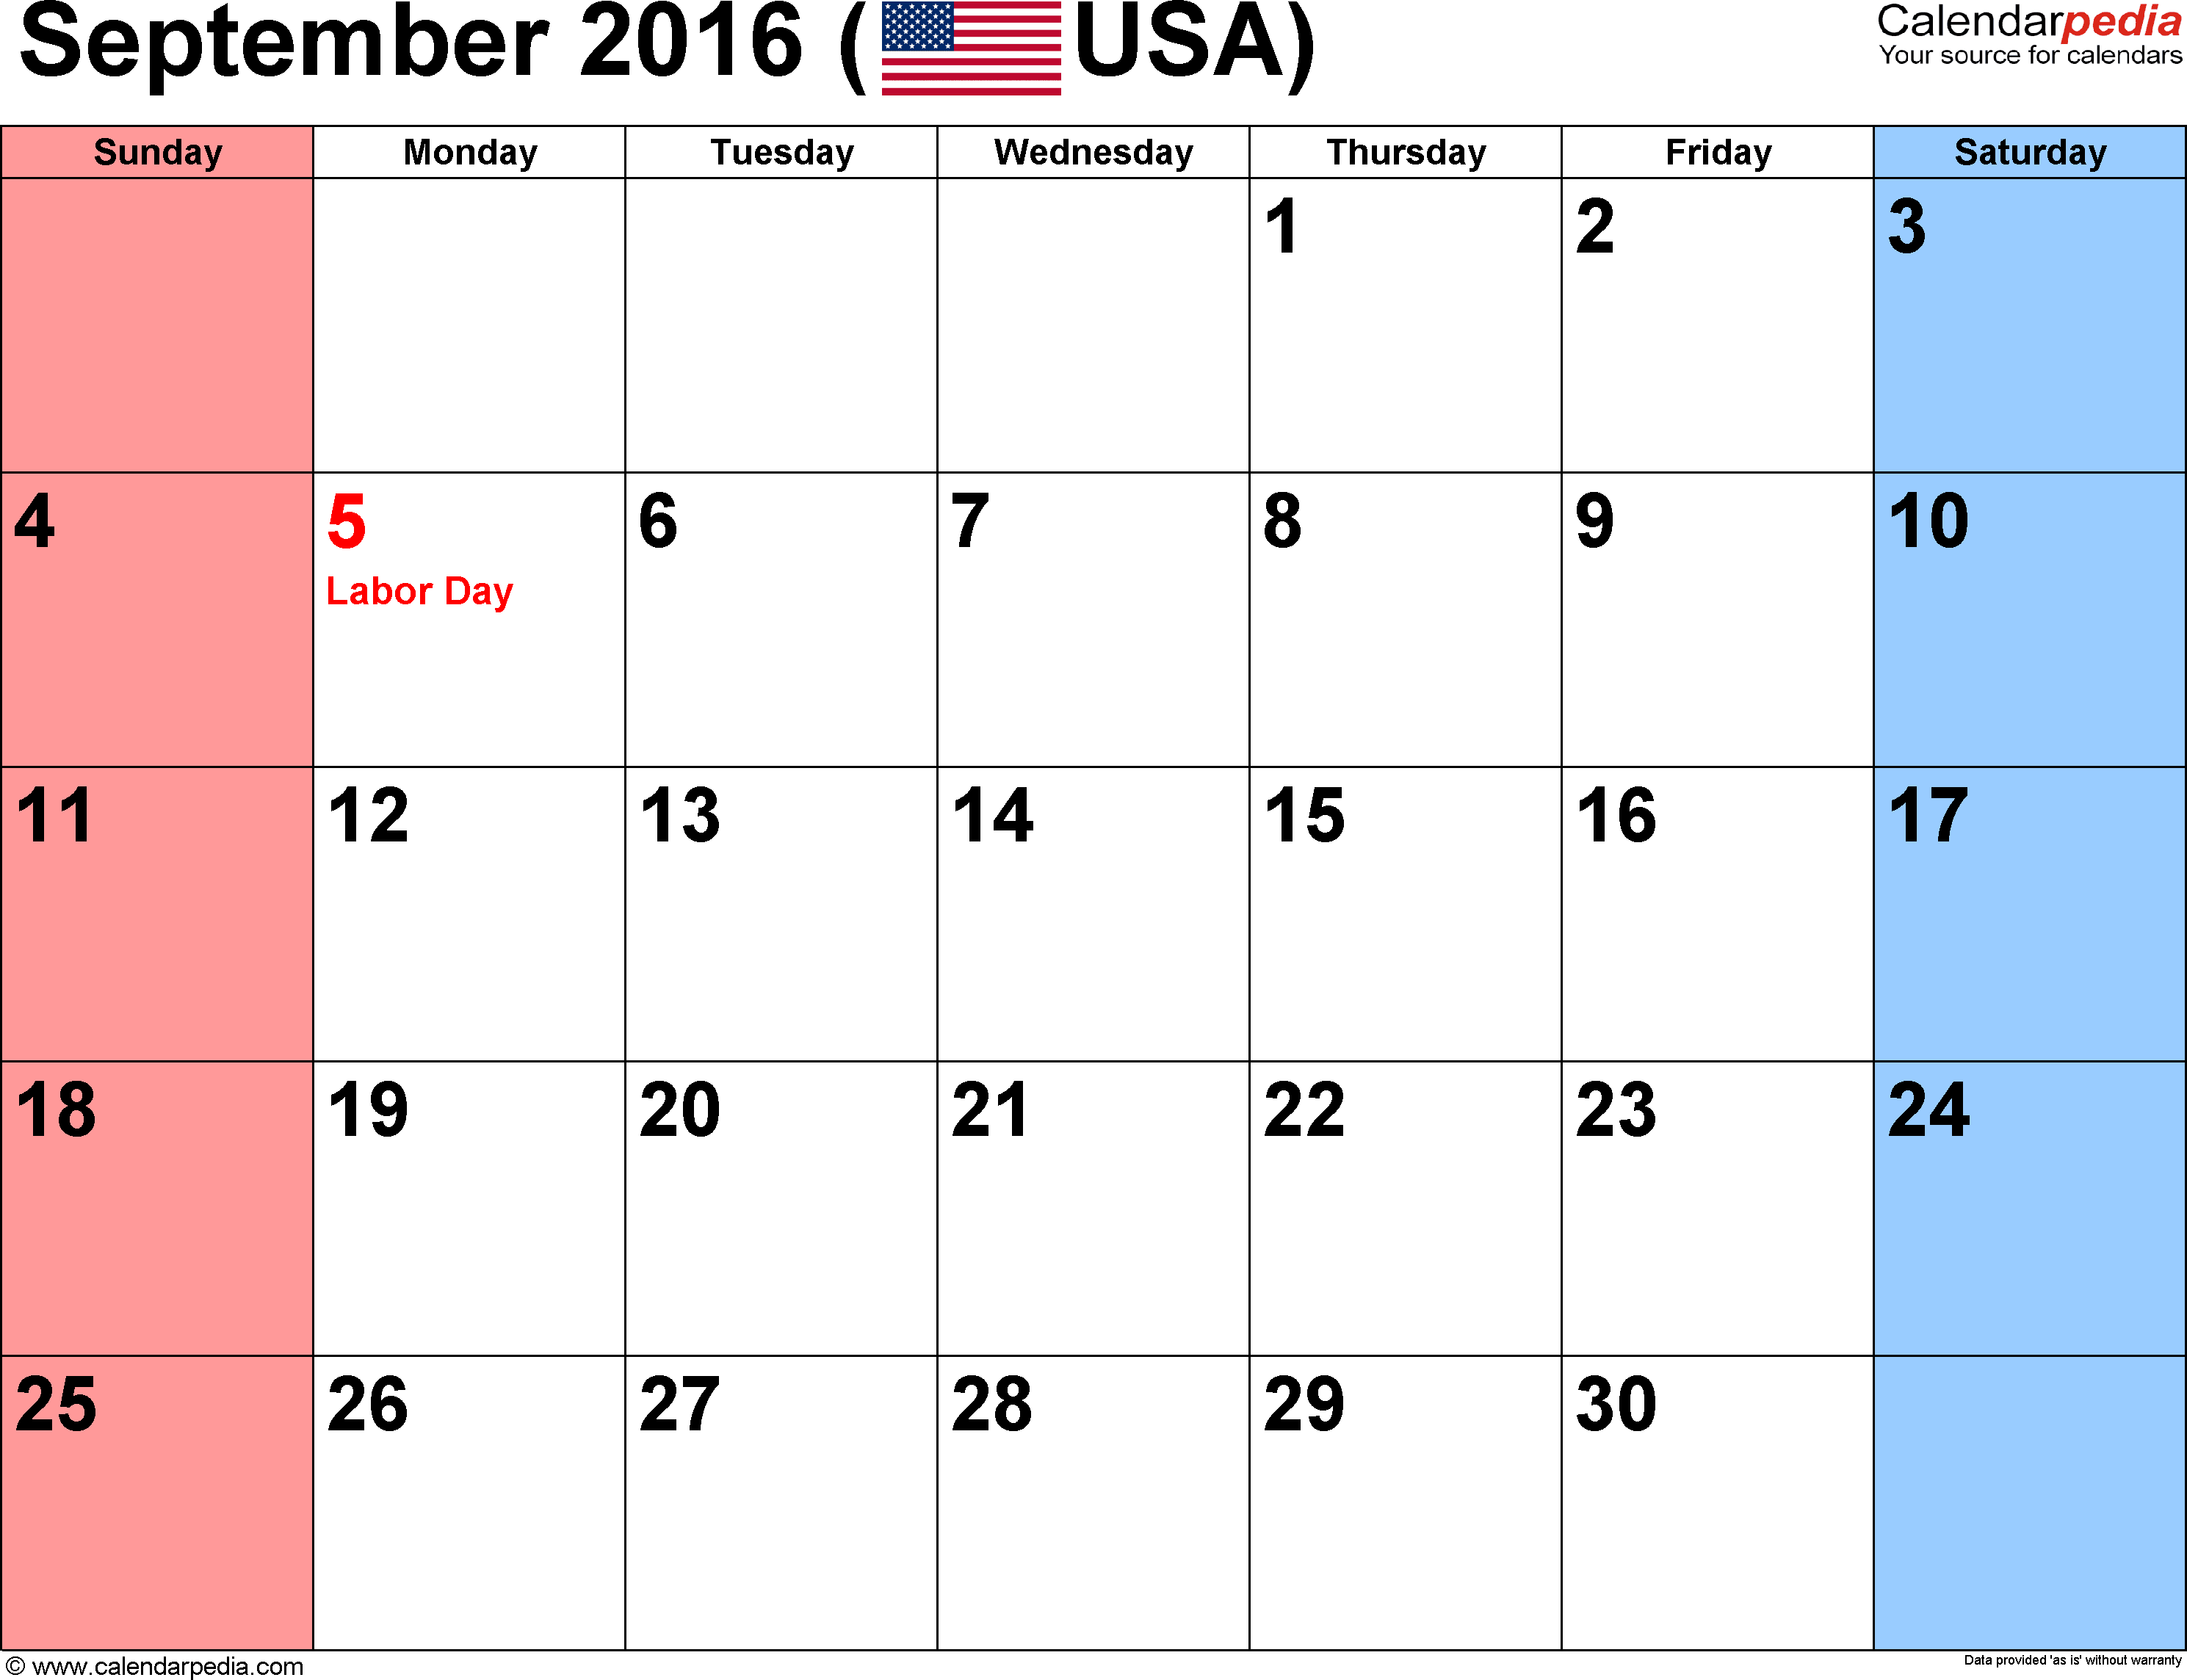 September 2016 Calendars for Word, Excel & PDF